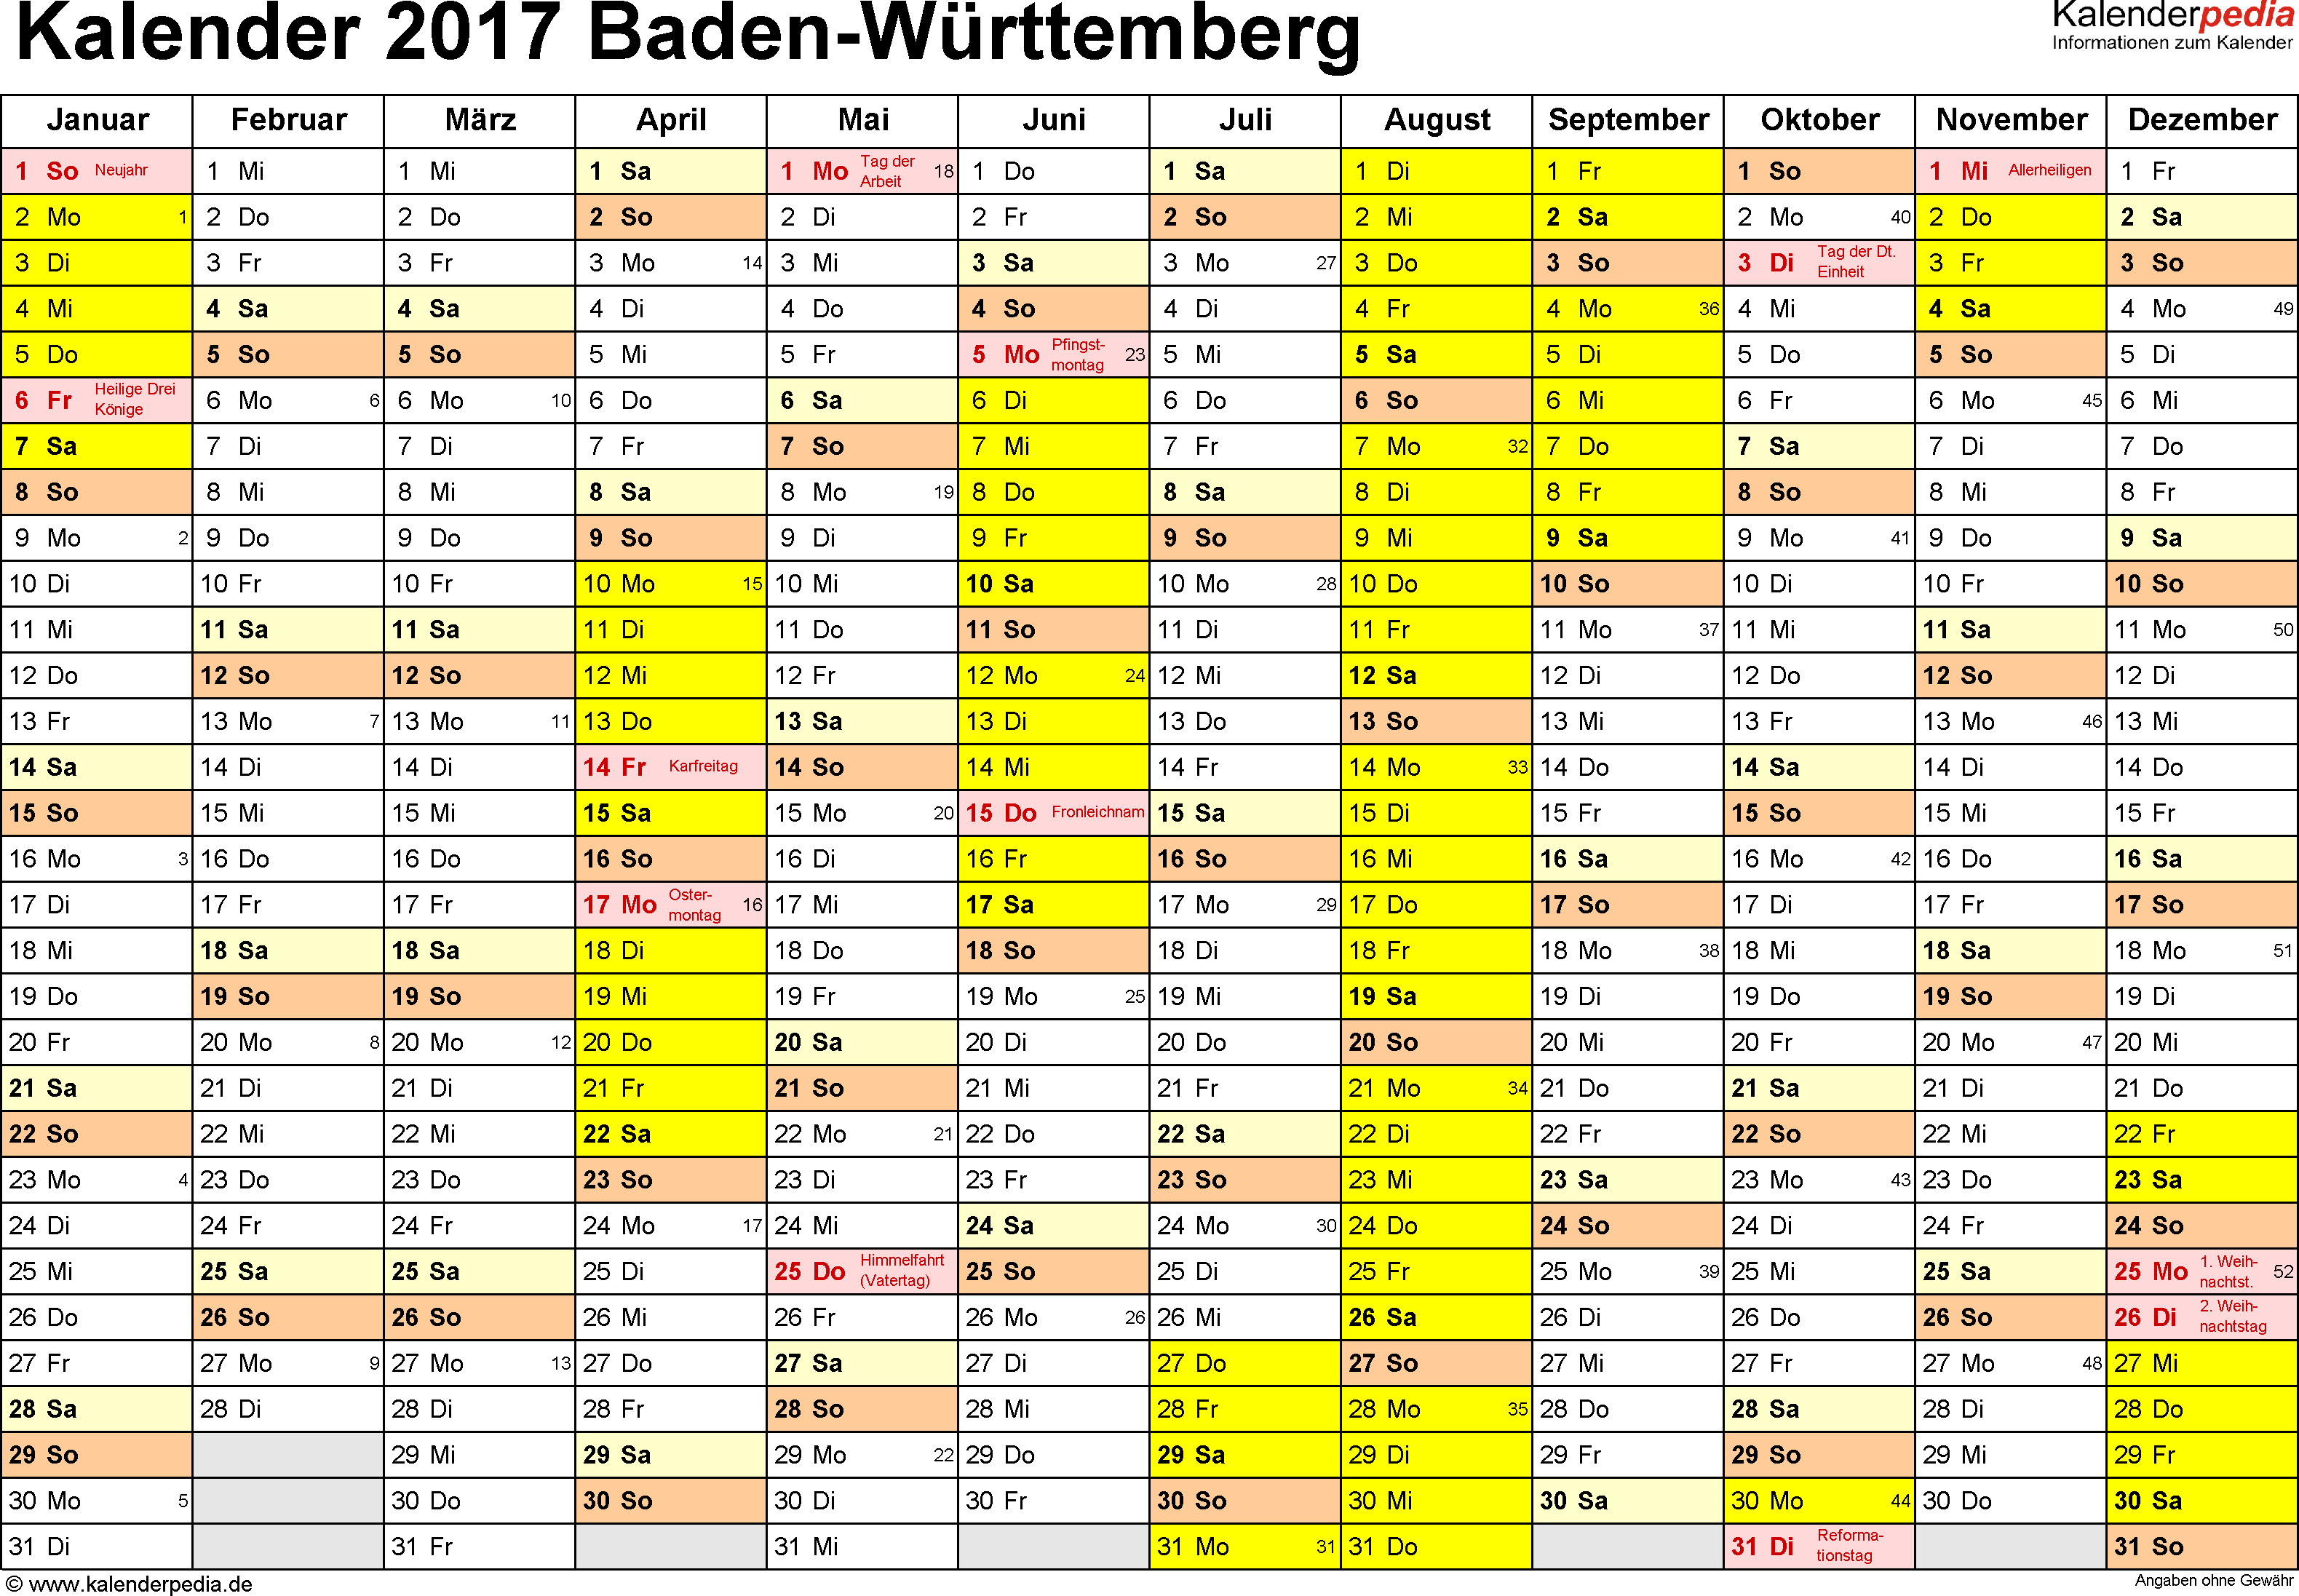 events in baden-württemberg in 2017